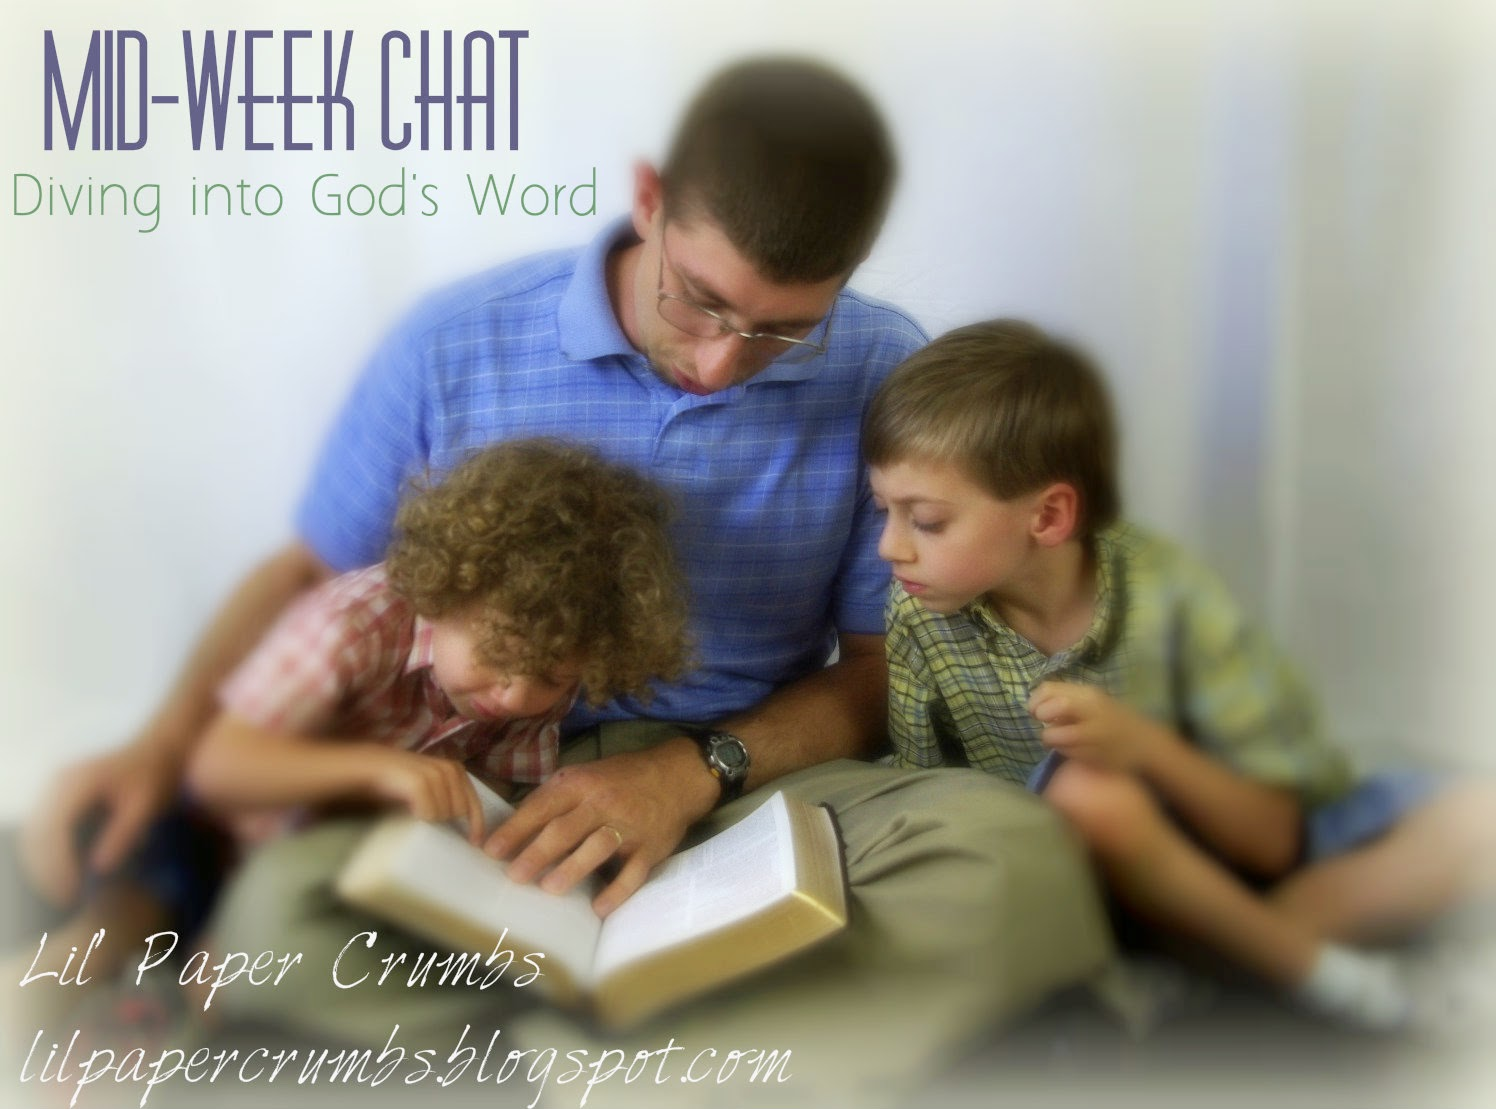 Mid-Week Chat - Diving into God's Word with Lil' Paper Crumbs